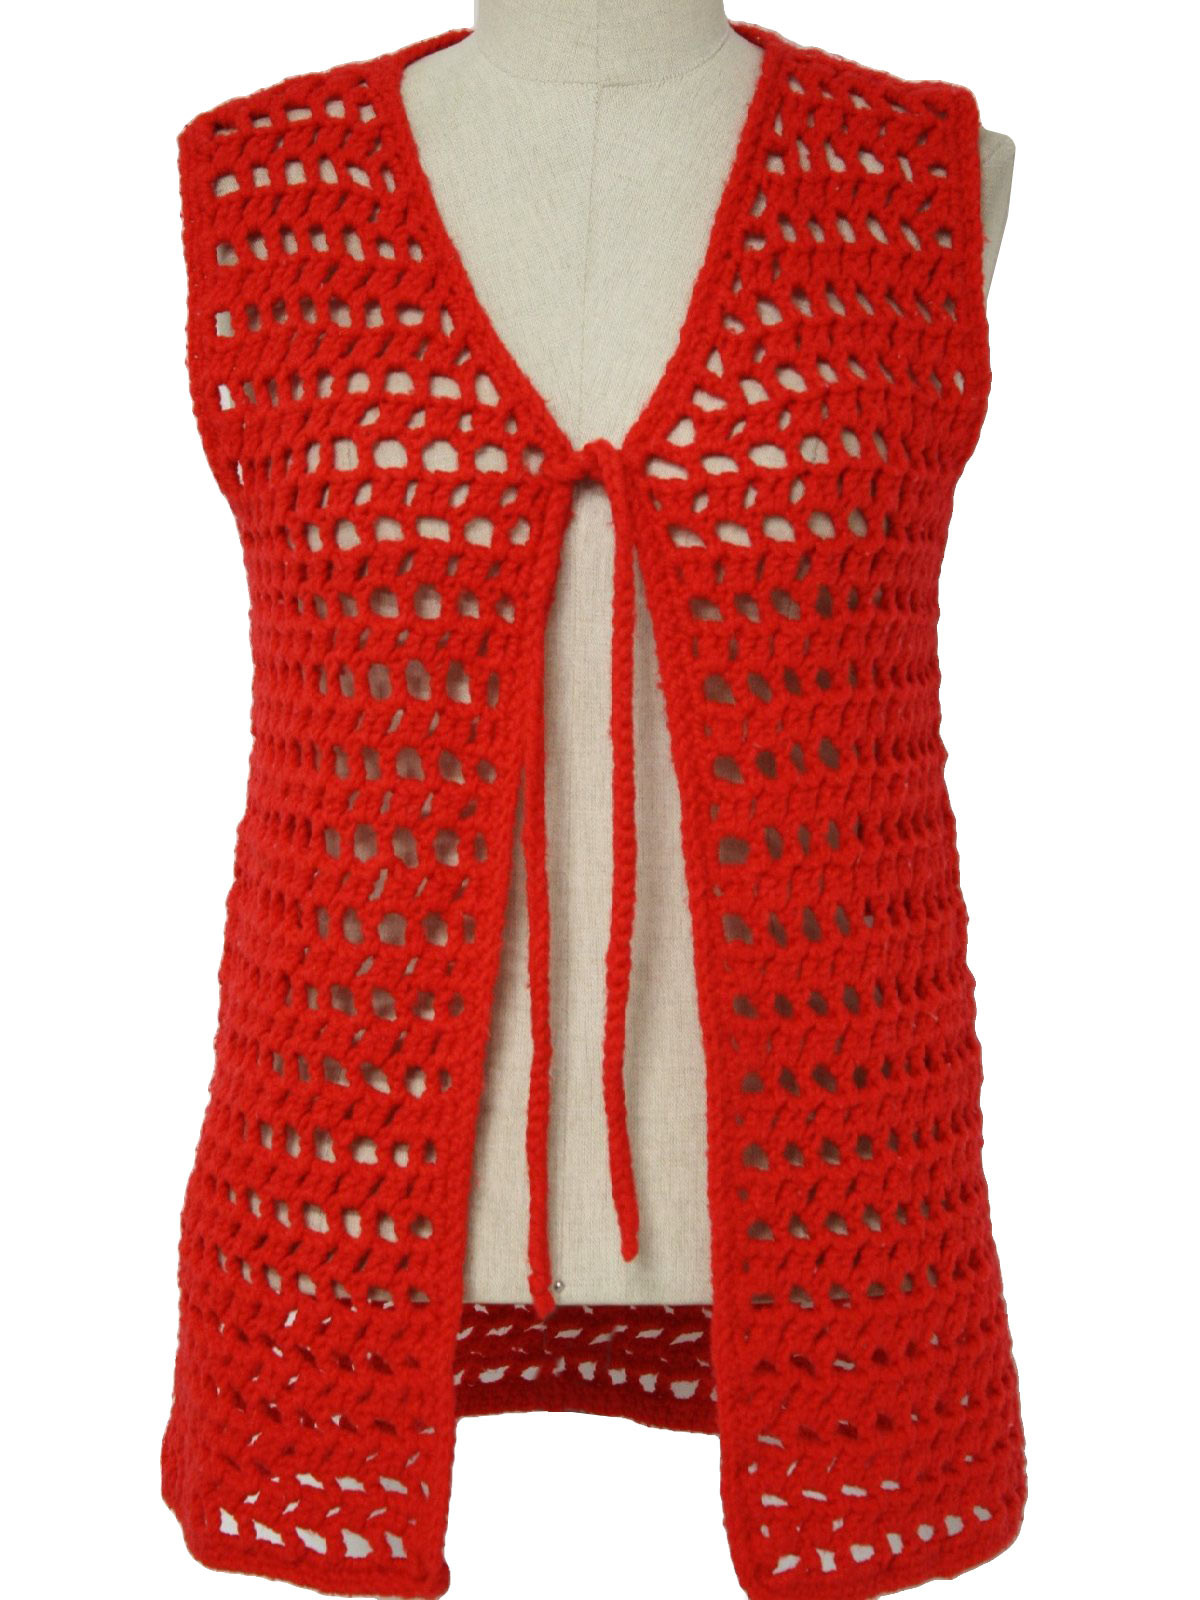 A Crochet Vest Accentuating Your Ordinary Outfits With